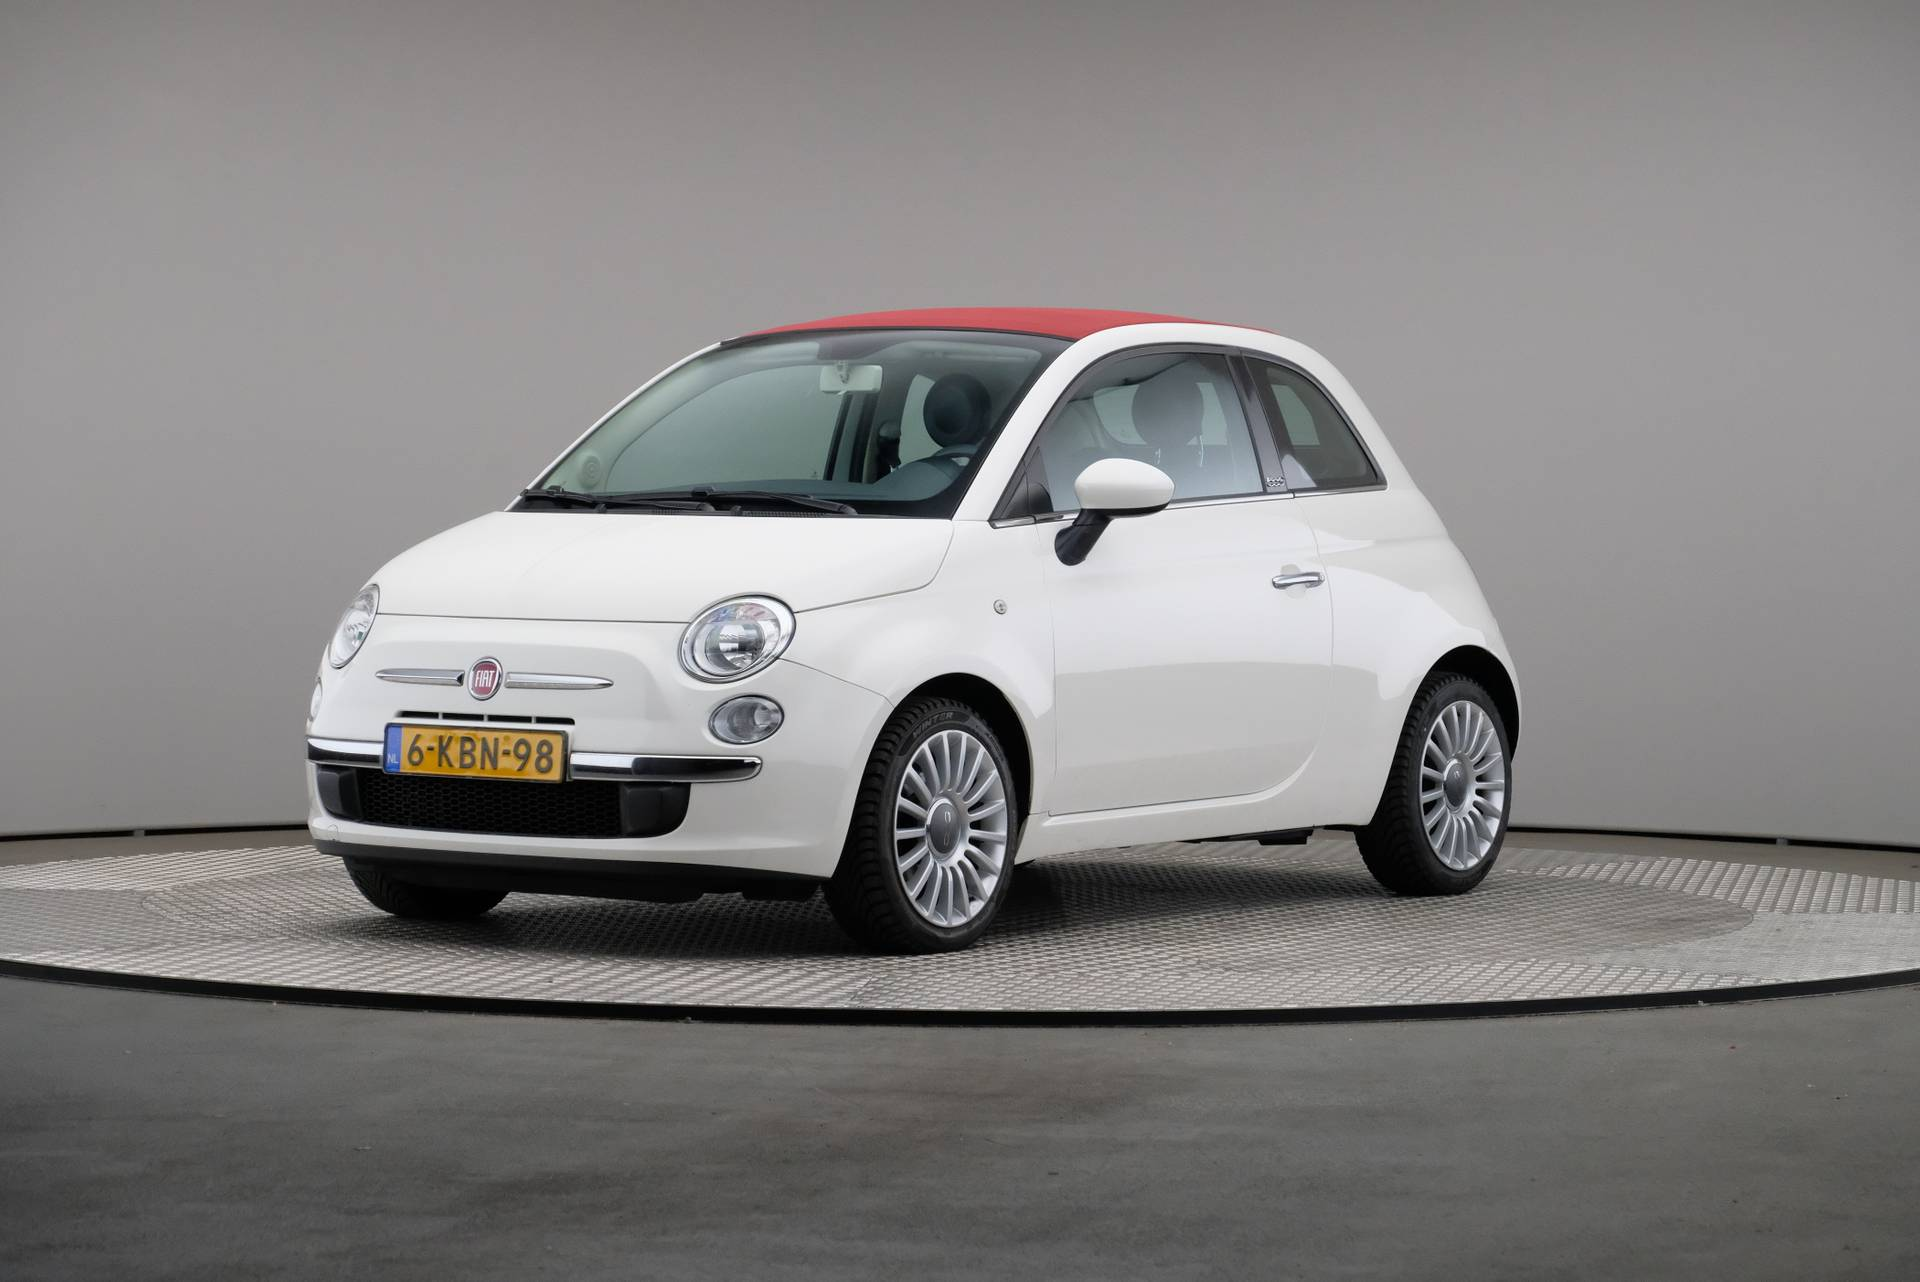 Fiat 500C TwinAir Turbo 85 Lounge, Airconditioning, 360-image0